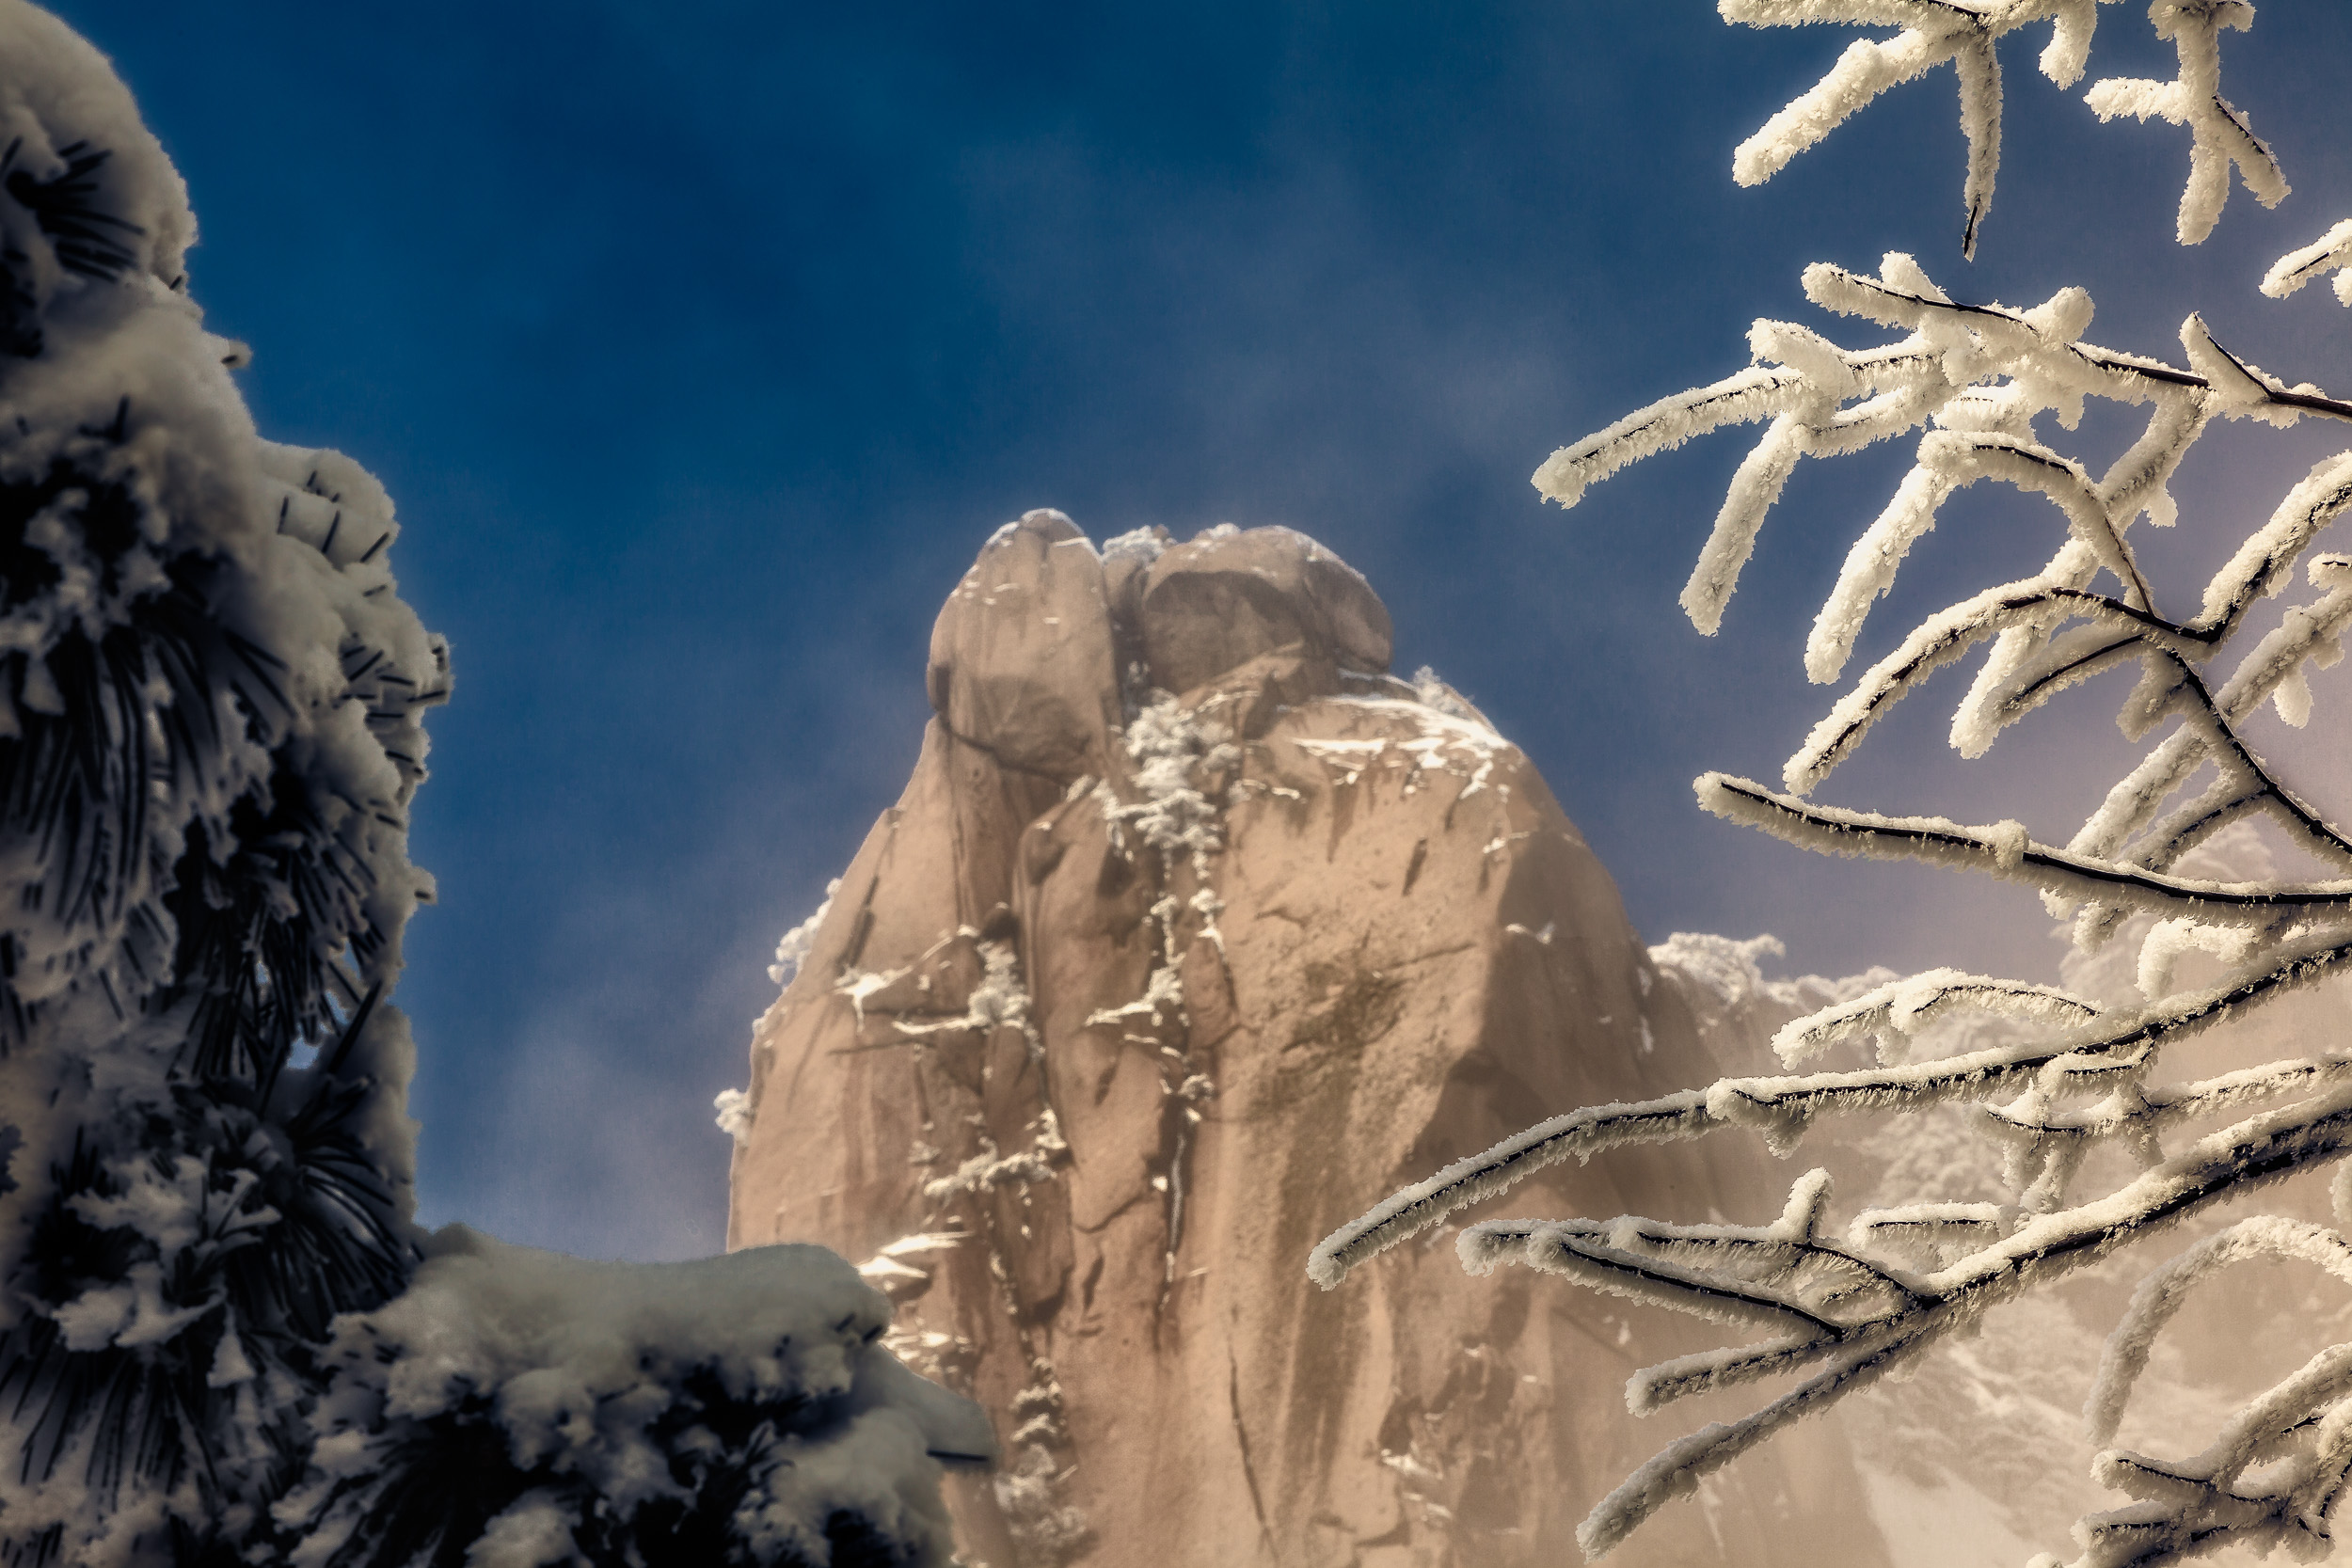 A mountain peak, bathed in warm light, is framed by ice encrusted trees on the spectacular    Huangshan    (i.e., Yellow Mountain) in    China   .